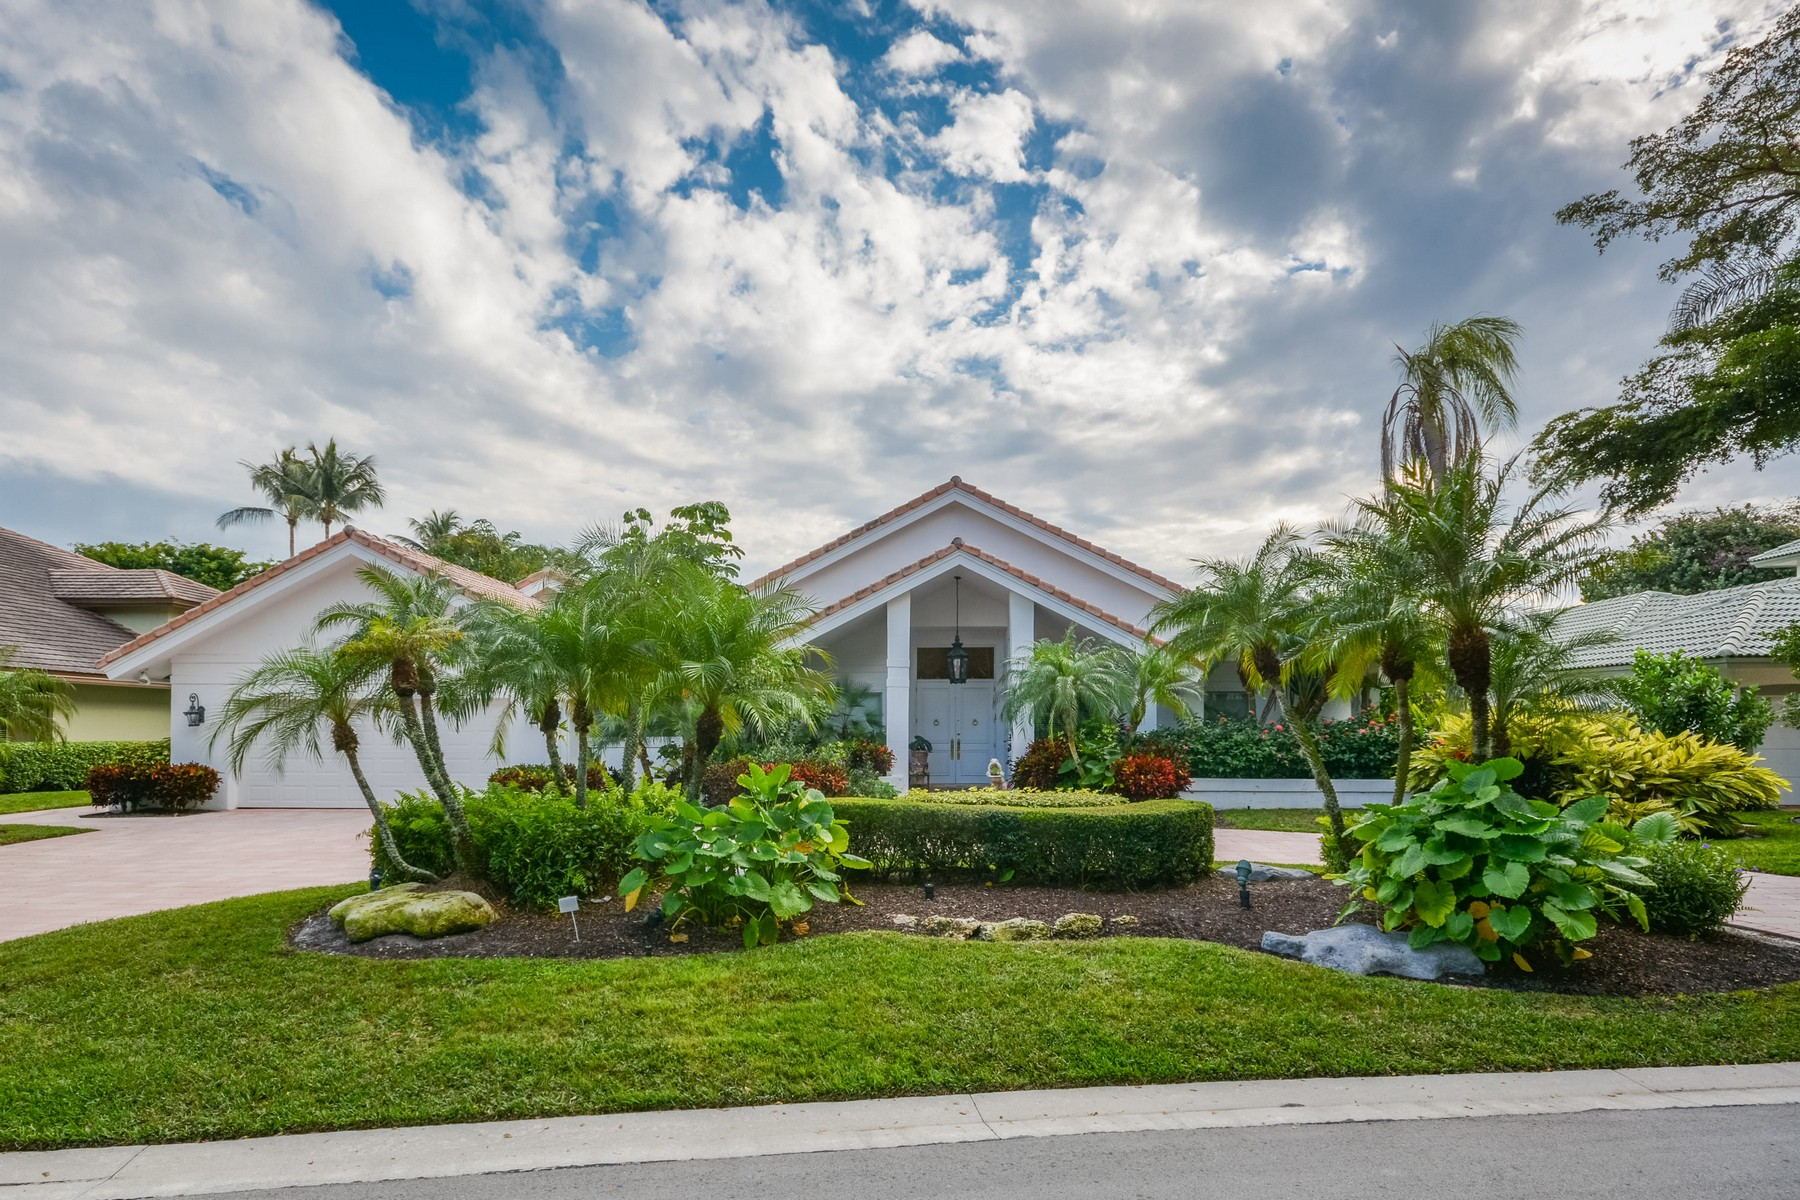 Single Family Home for Sale at 7500 Mahogany Bend Pl , Boca Raton, FL 33434 7500 Mahogany Bend Pl Boca Raton, Florida, 33434 United States